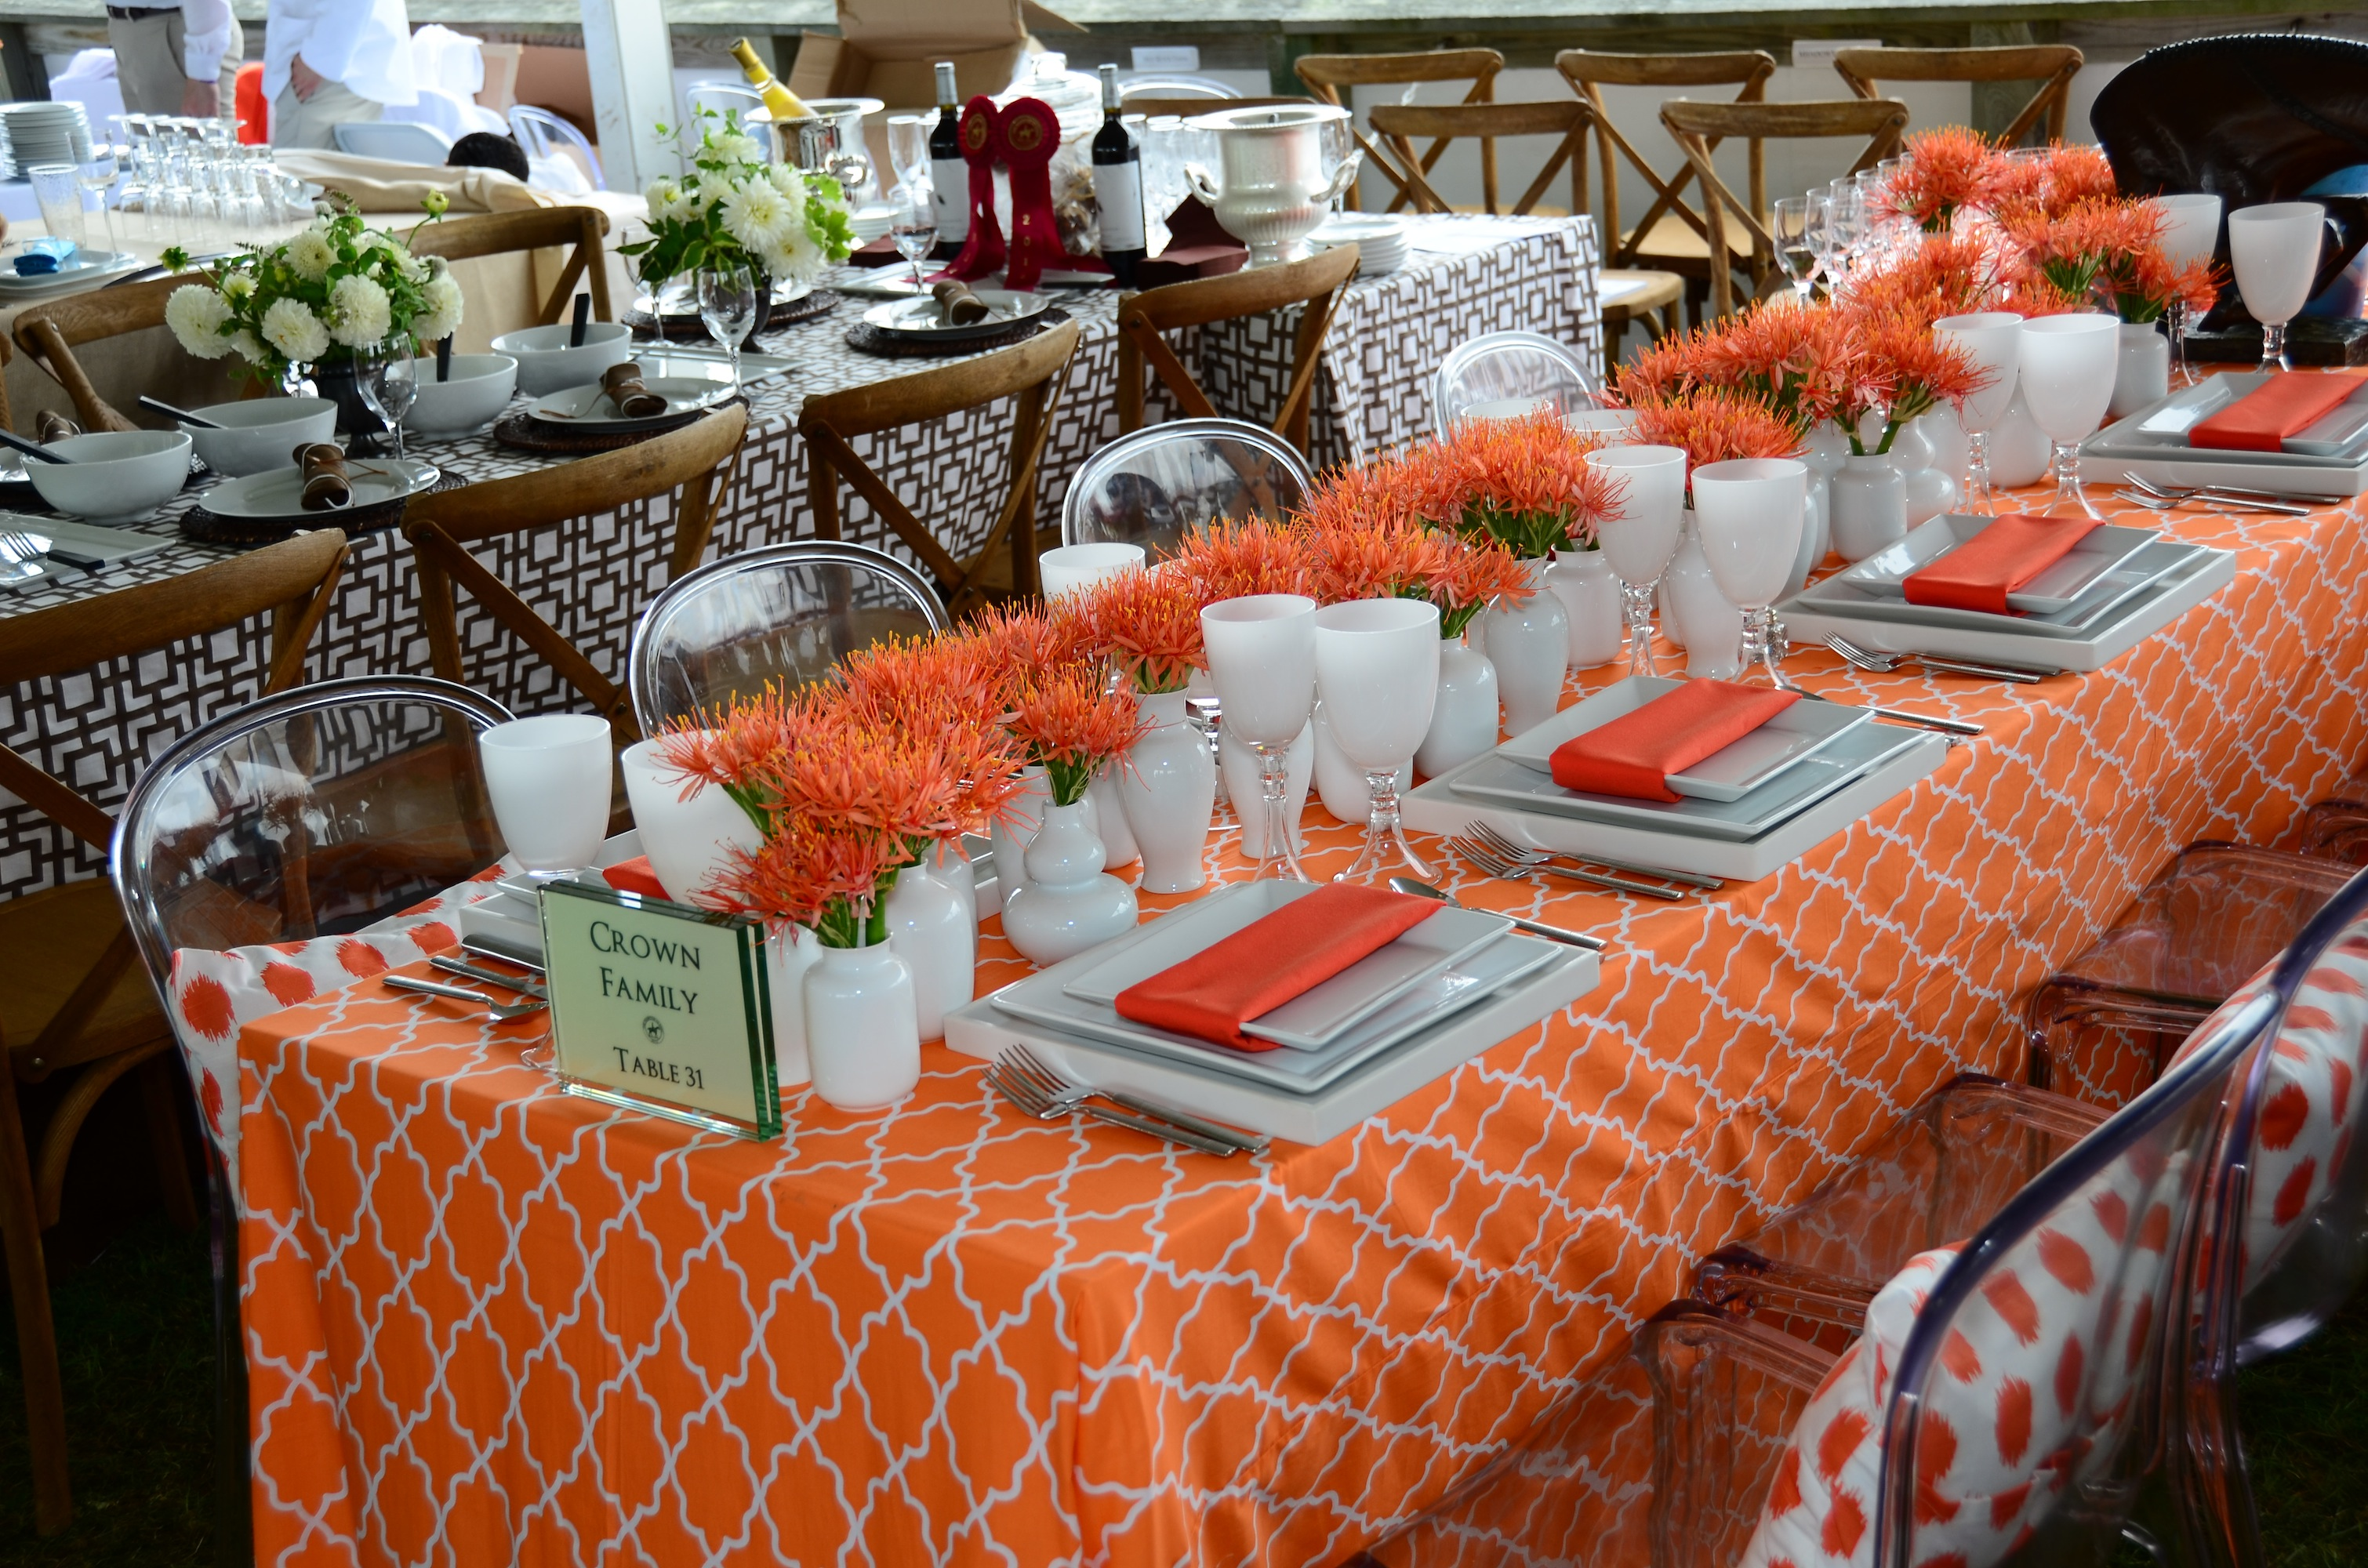 The Hamptons classic boasts great food and wine and beautiful place settings